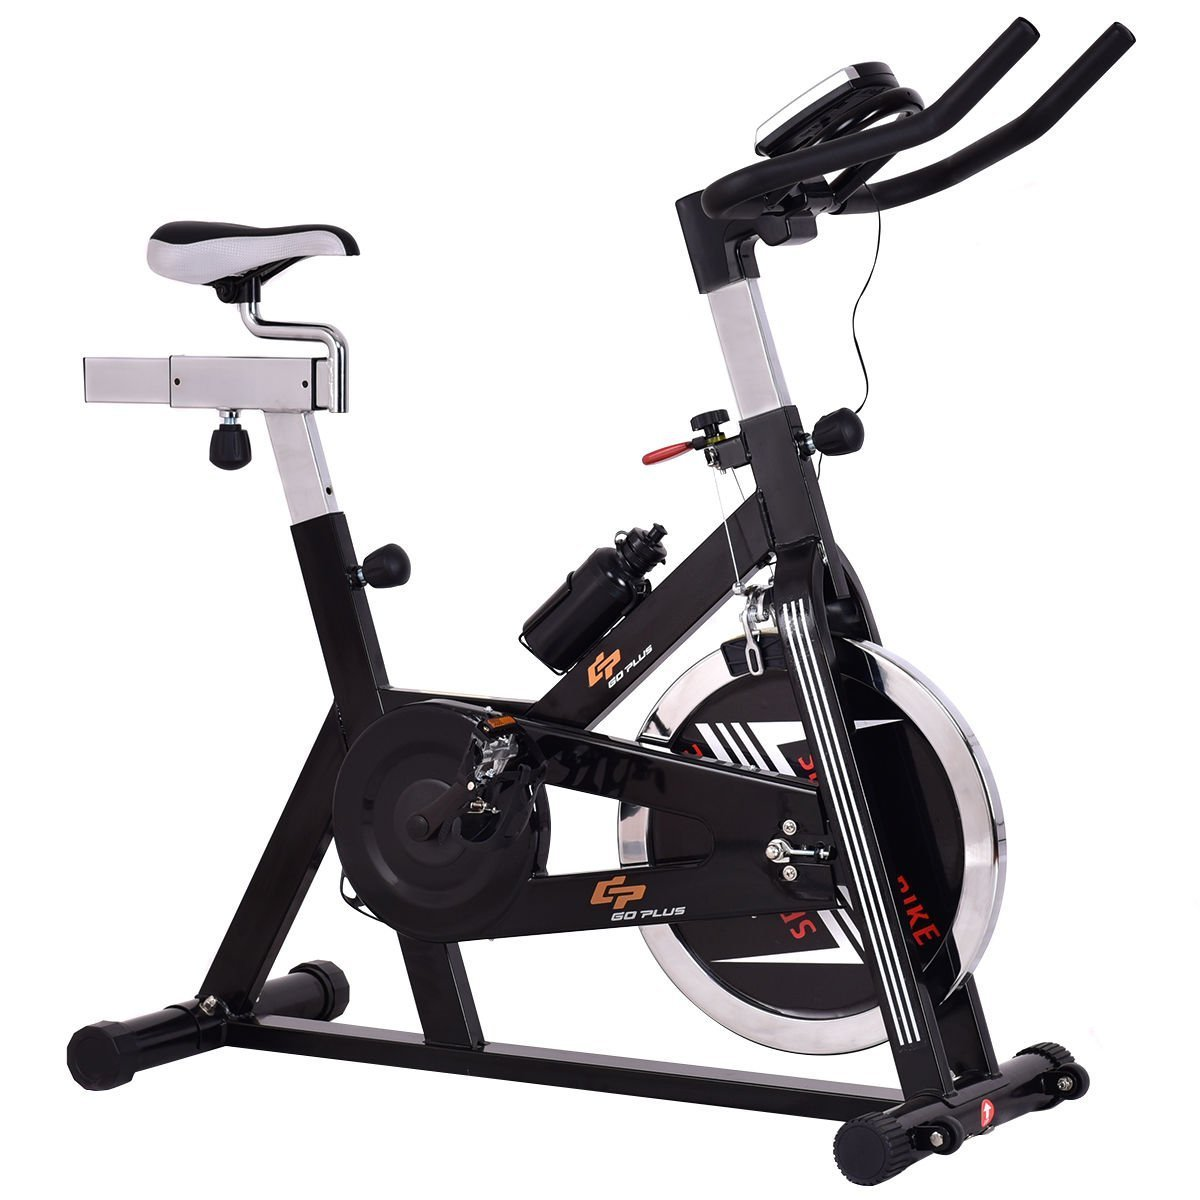 Gymax Stationary Exercise Bike w/ Adjustable Seat and Handlebars, Indoor Cycling Bike Cardio Fitness Home Gym Equipment by Gymax (Image #2)